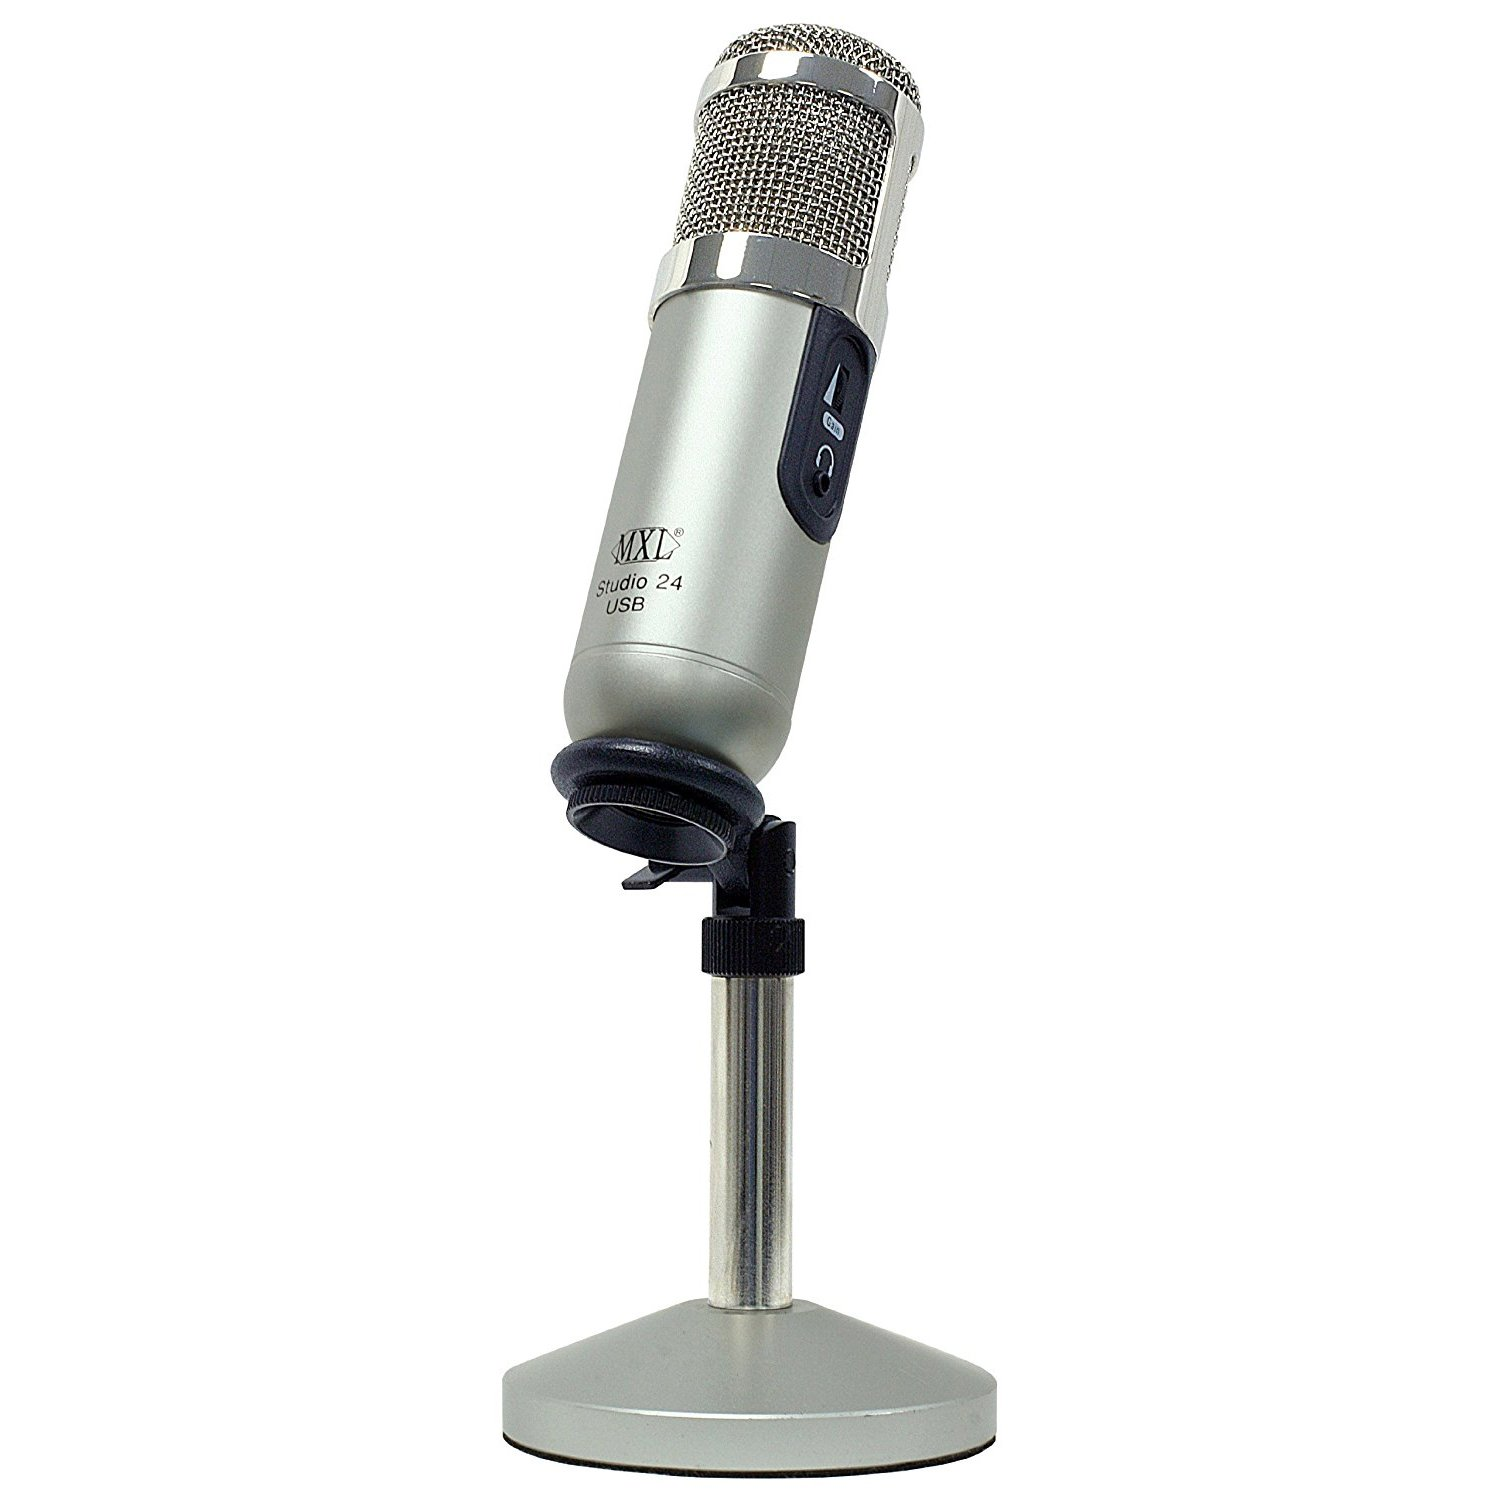 Amazon.com: MXL Studio 24 USB Microphone: Musical Instruments